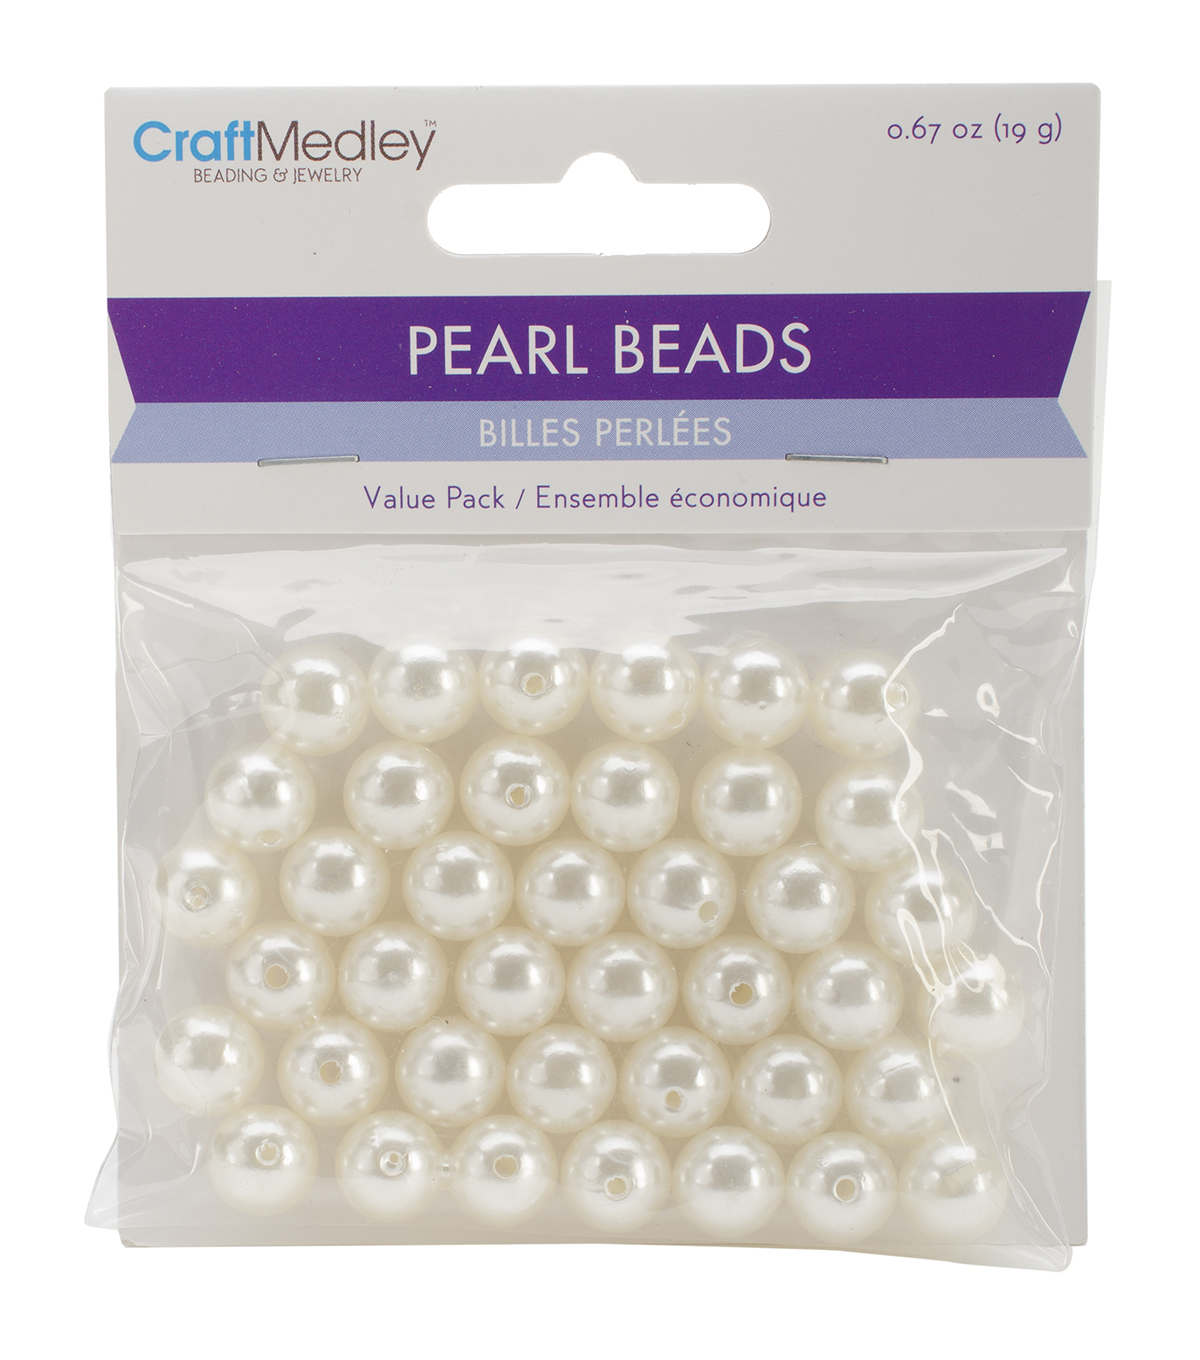 Craft Medley Pearl Beads Value Pack 10mm